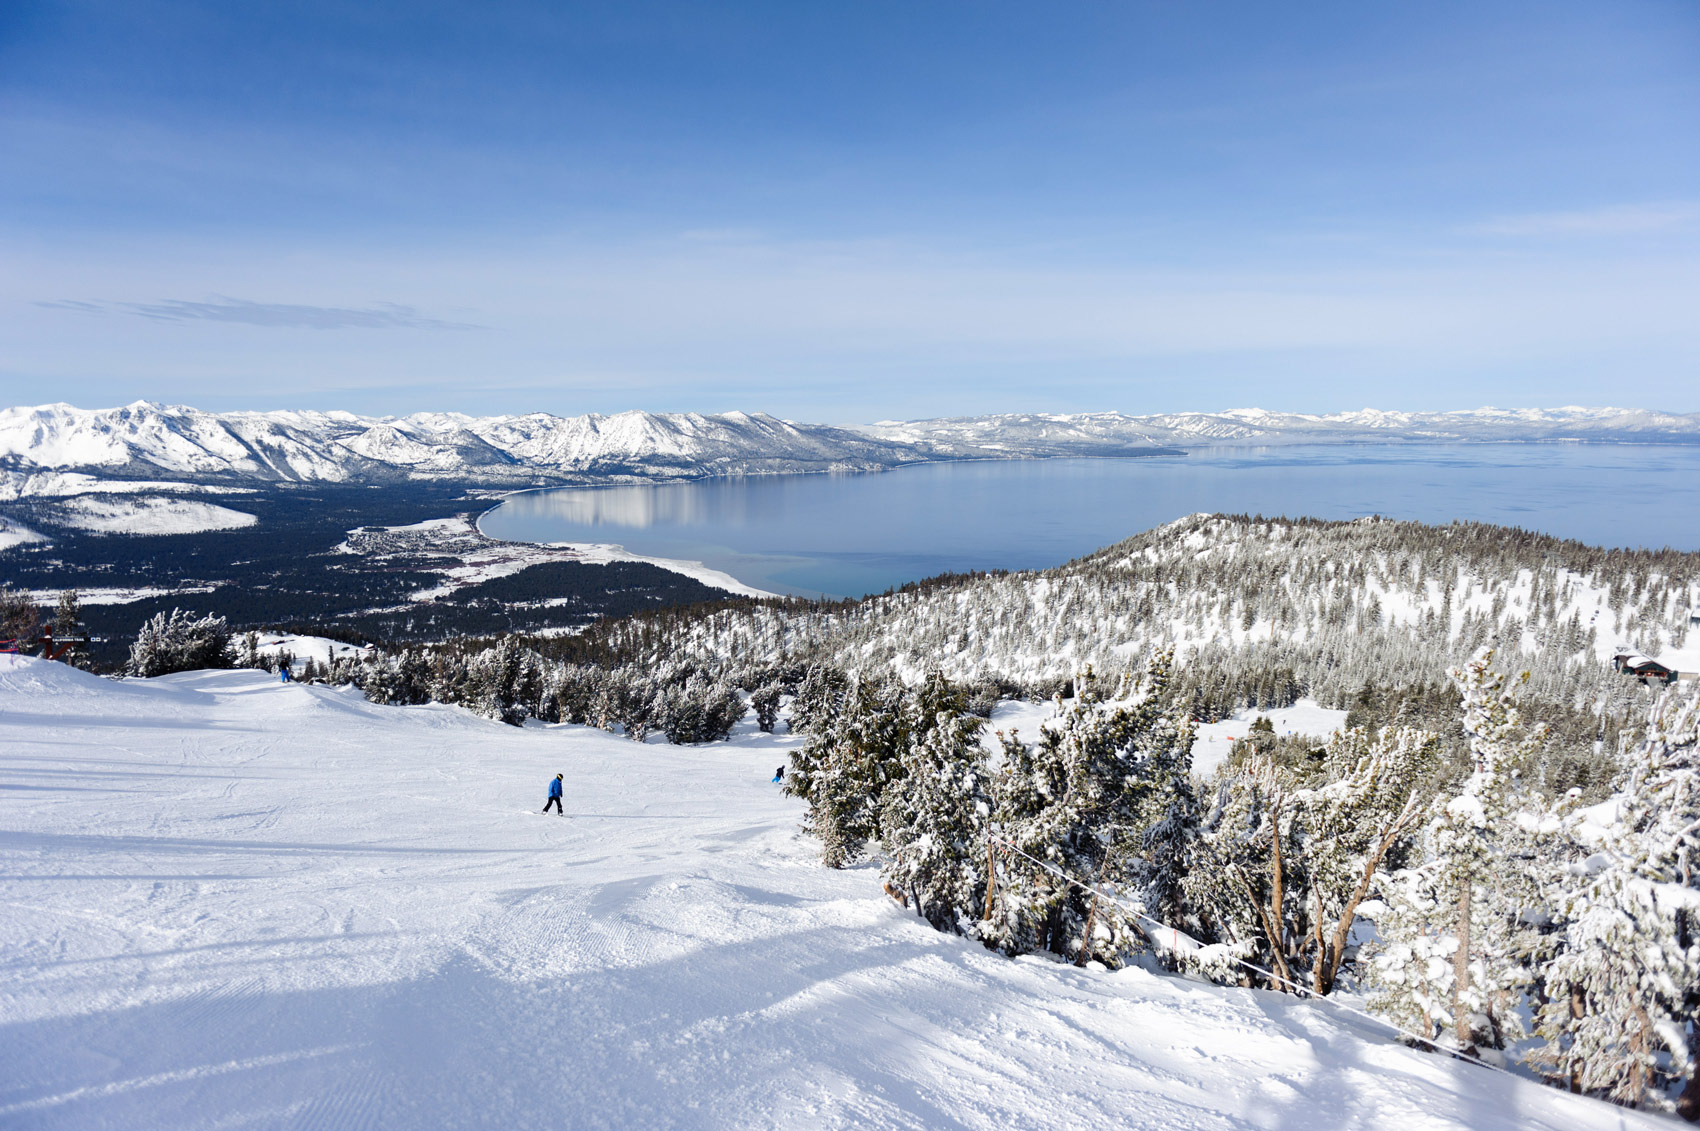 Image of South Lake Tahoe